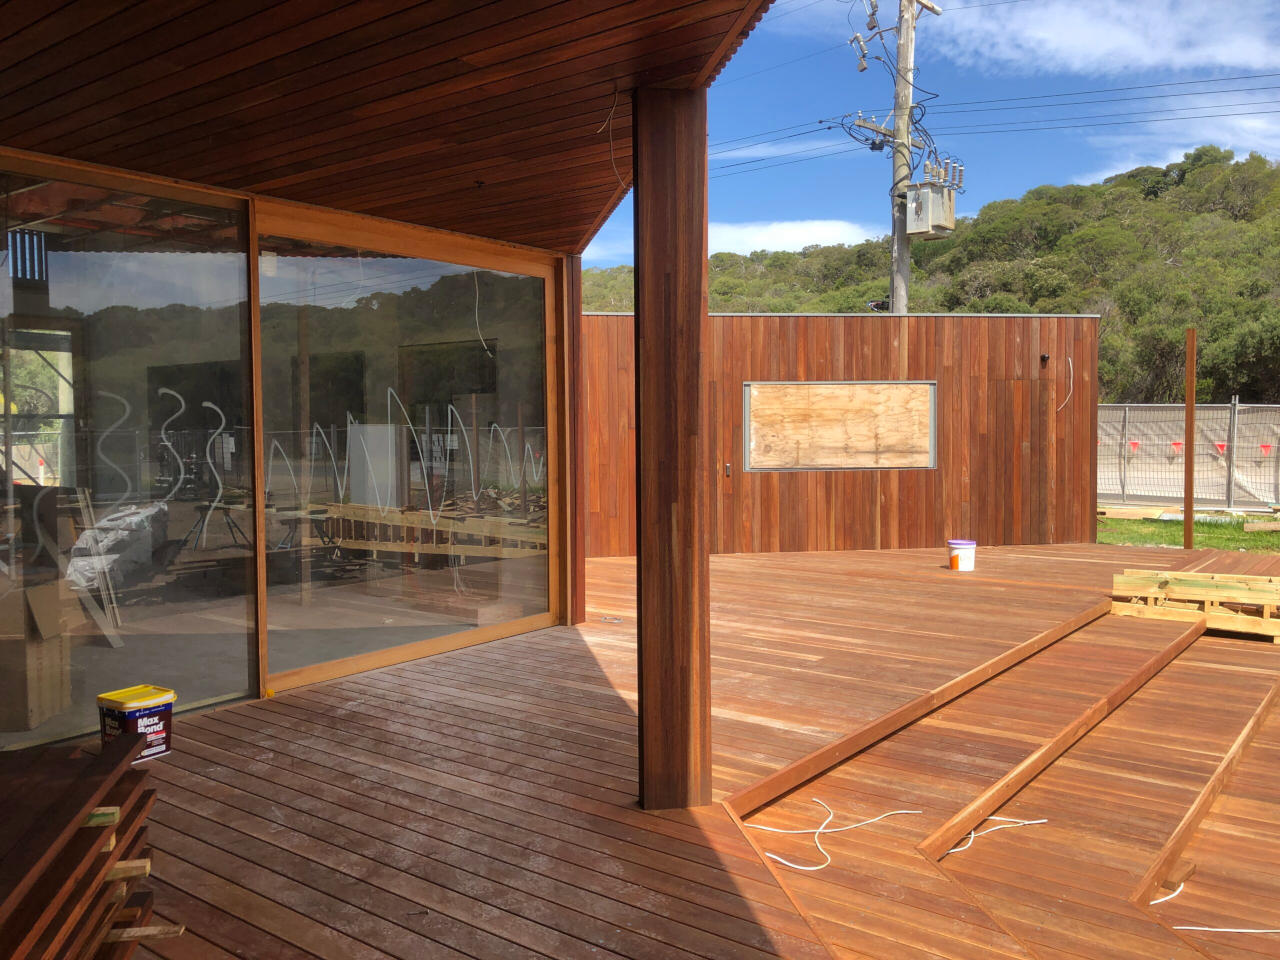 PLSLSC timber deck and seating